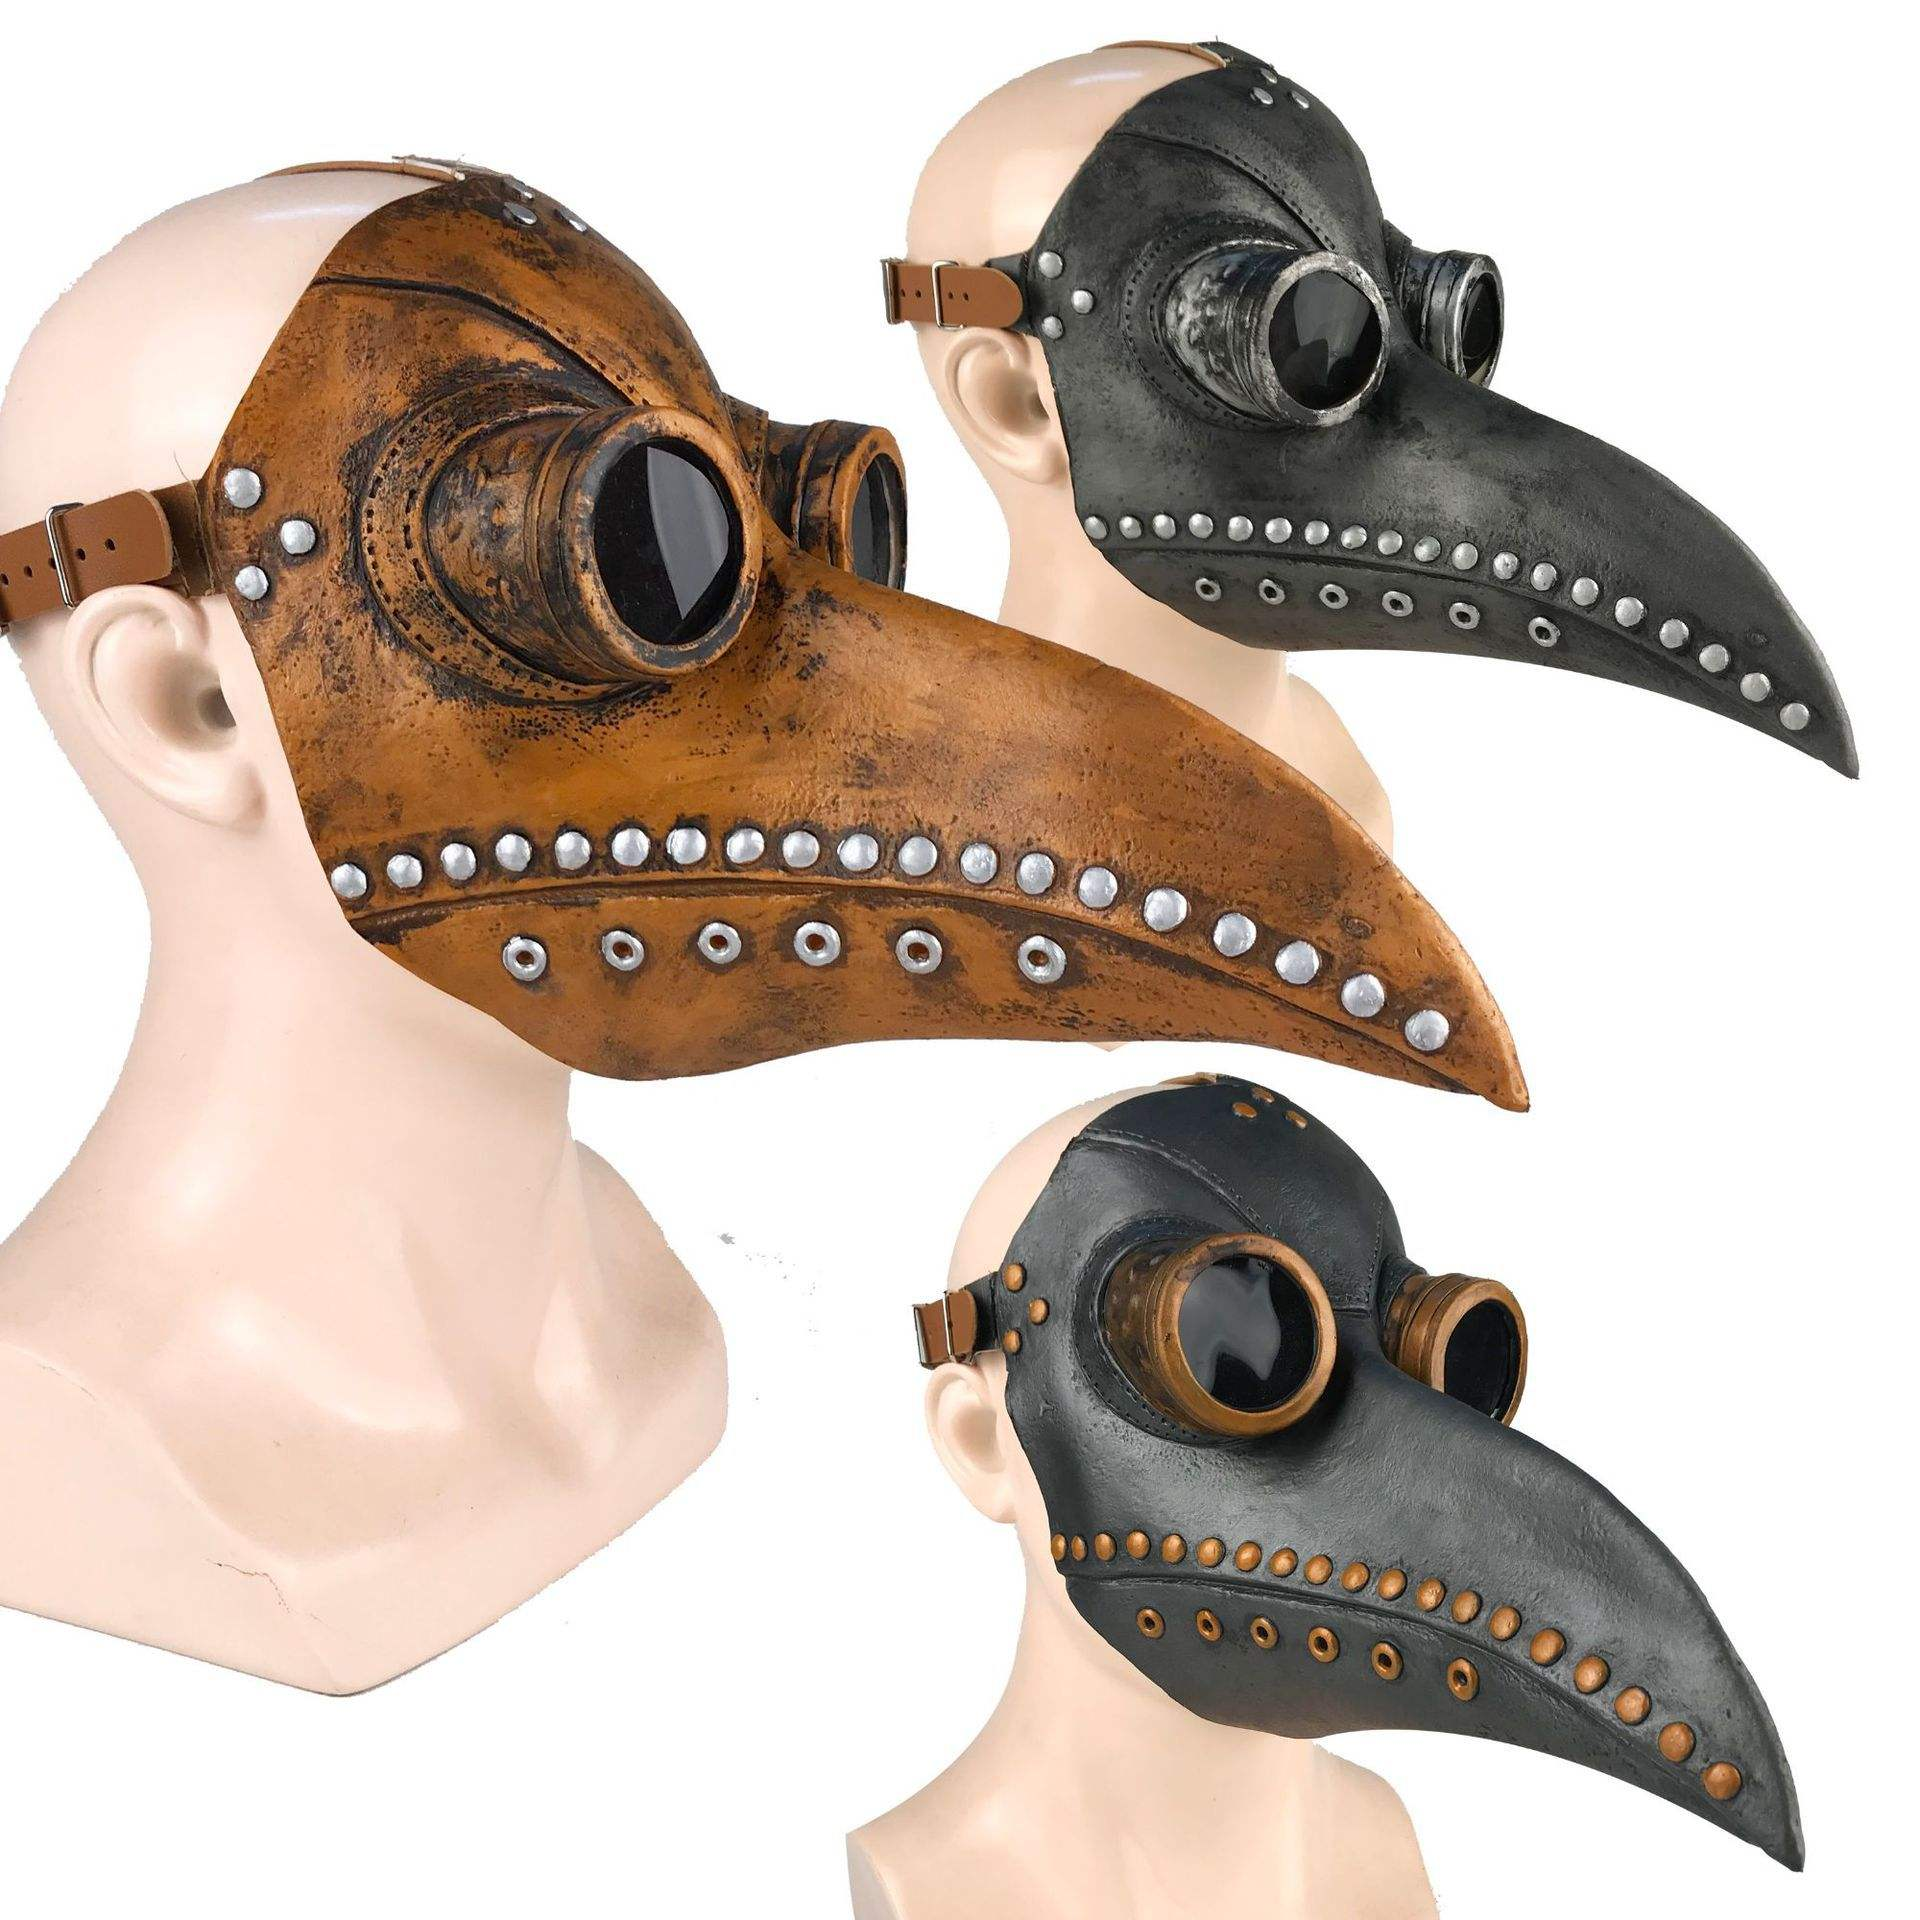 (Hottest)Halloween cosplay doctor plague mask,Halloween Costume doctor plague mask,latex plague Doctor mask for party decoration